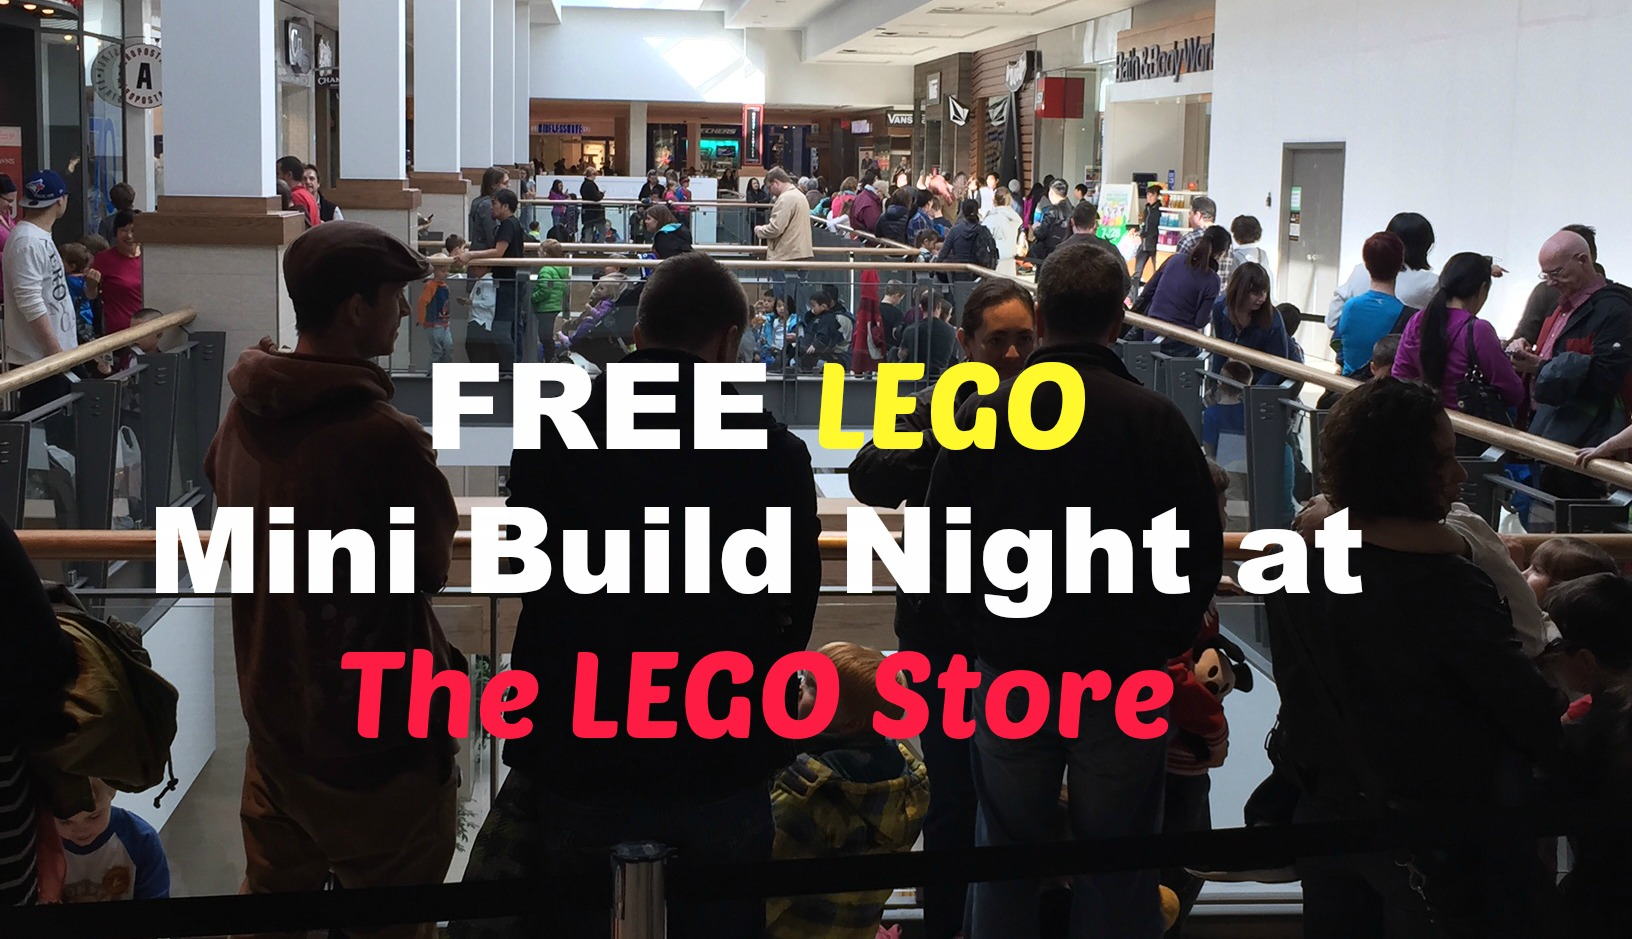 free lego mini build night